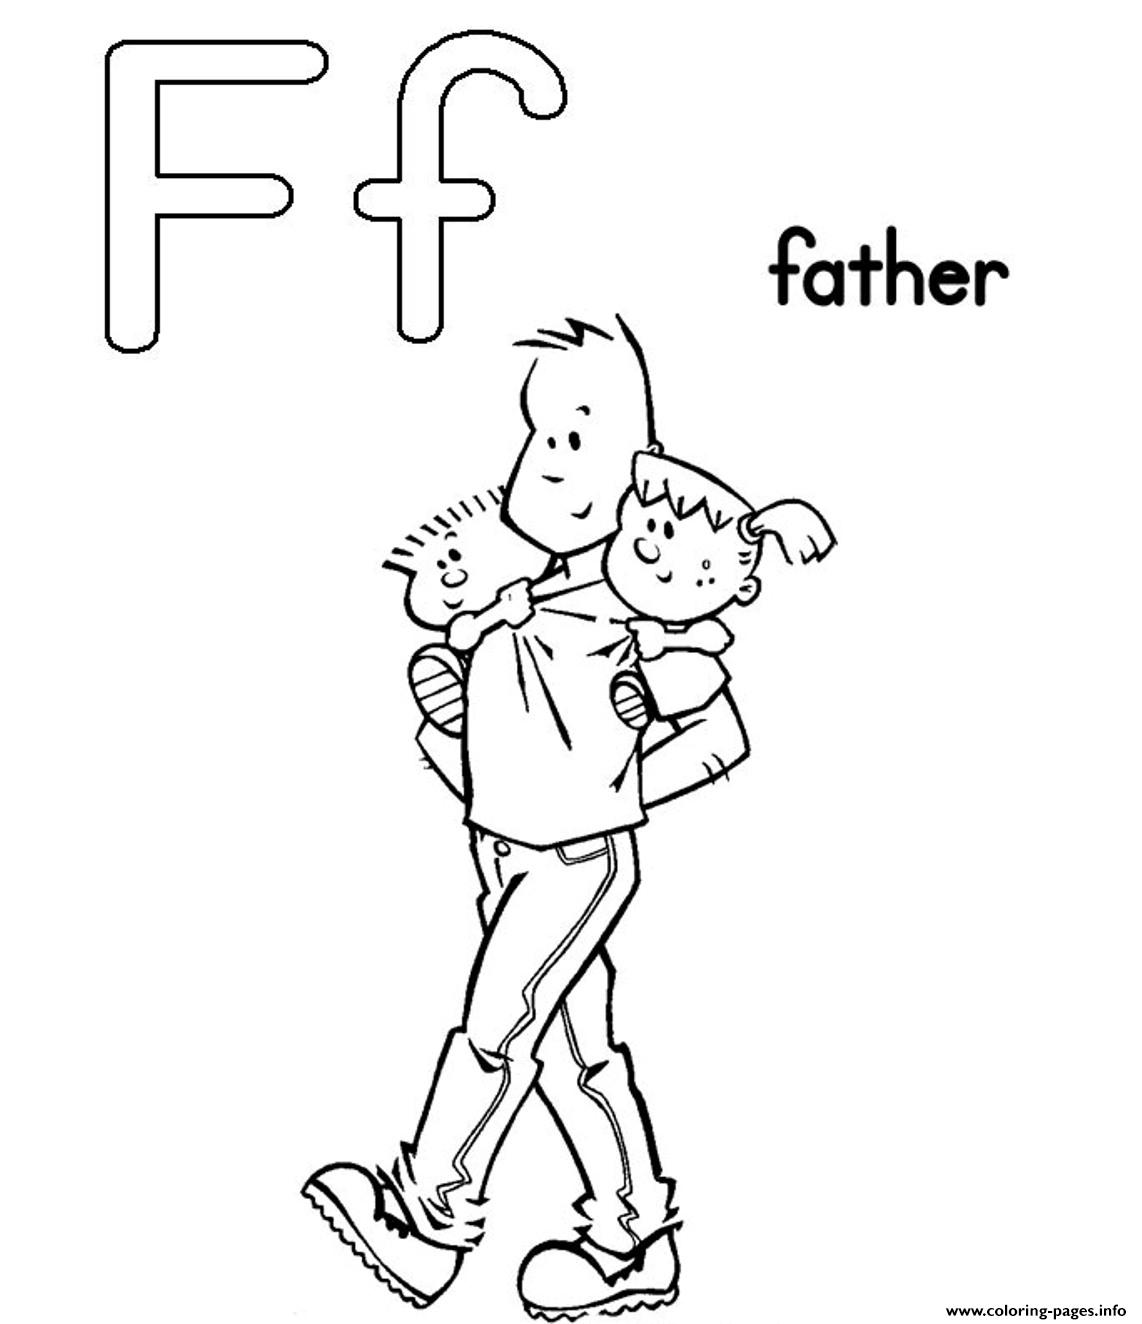 Father Free Alphabet S02c6 coloring pages